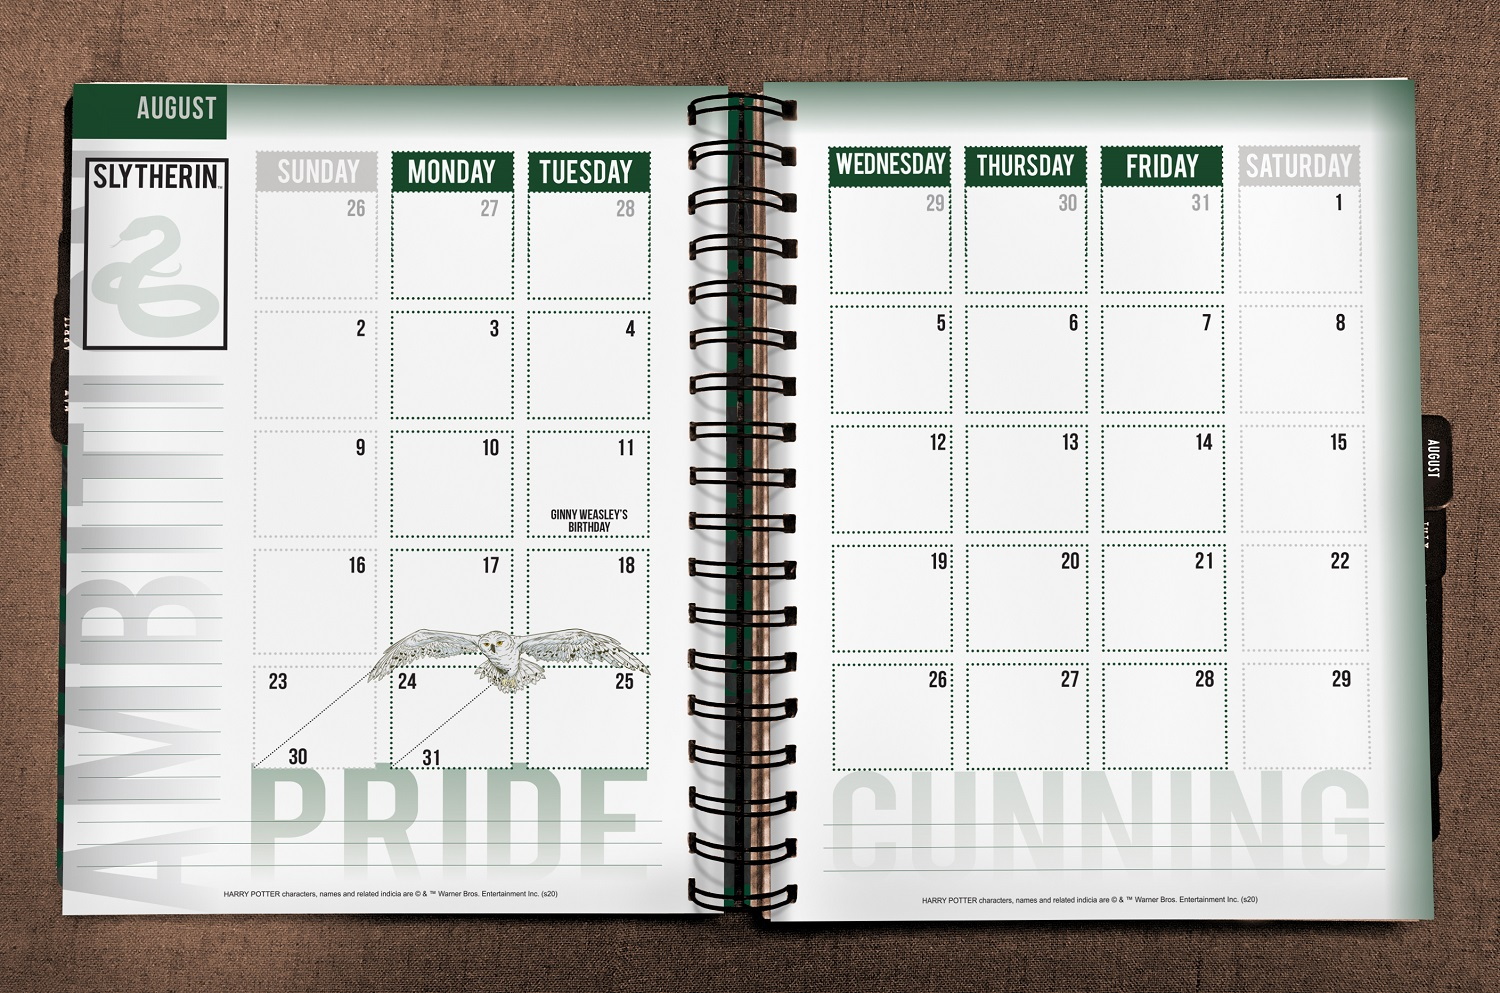 ConQuest Harry Potter Slytherin 2020 inside monthly spread